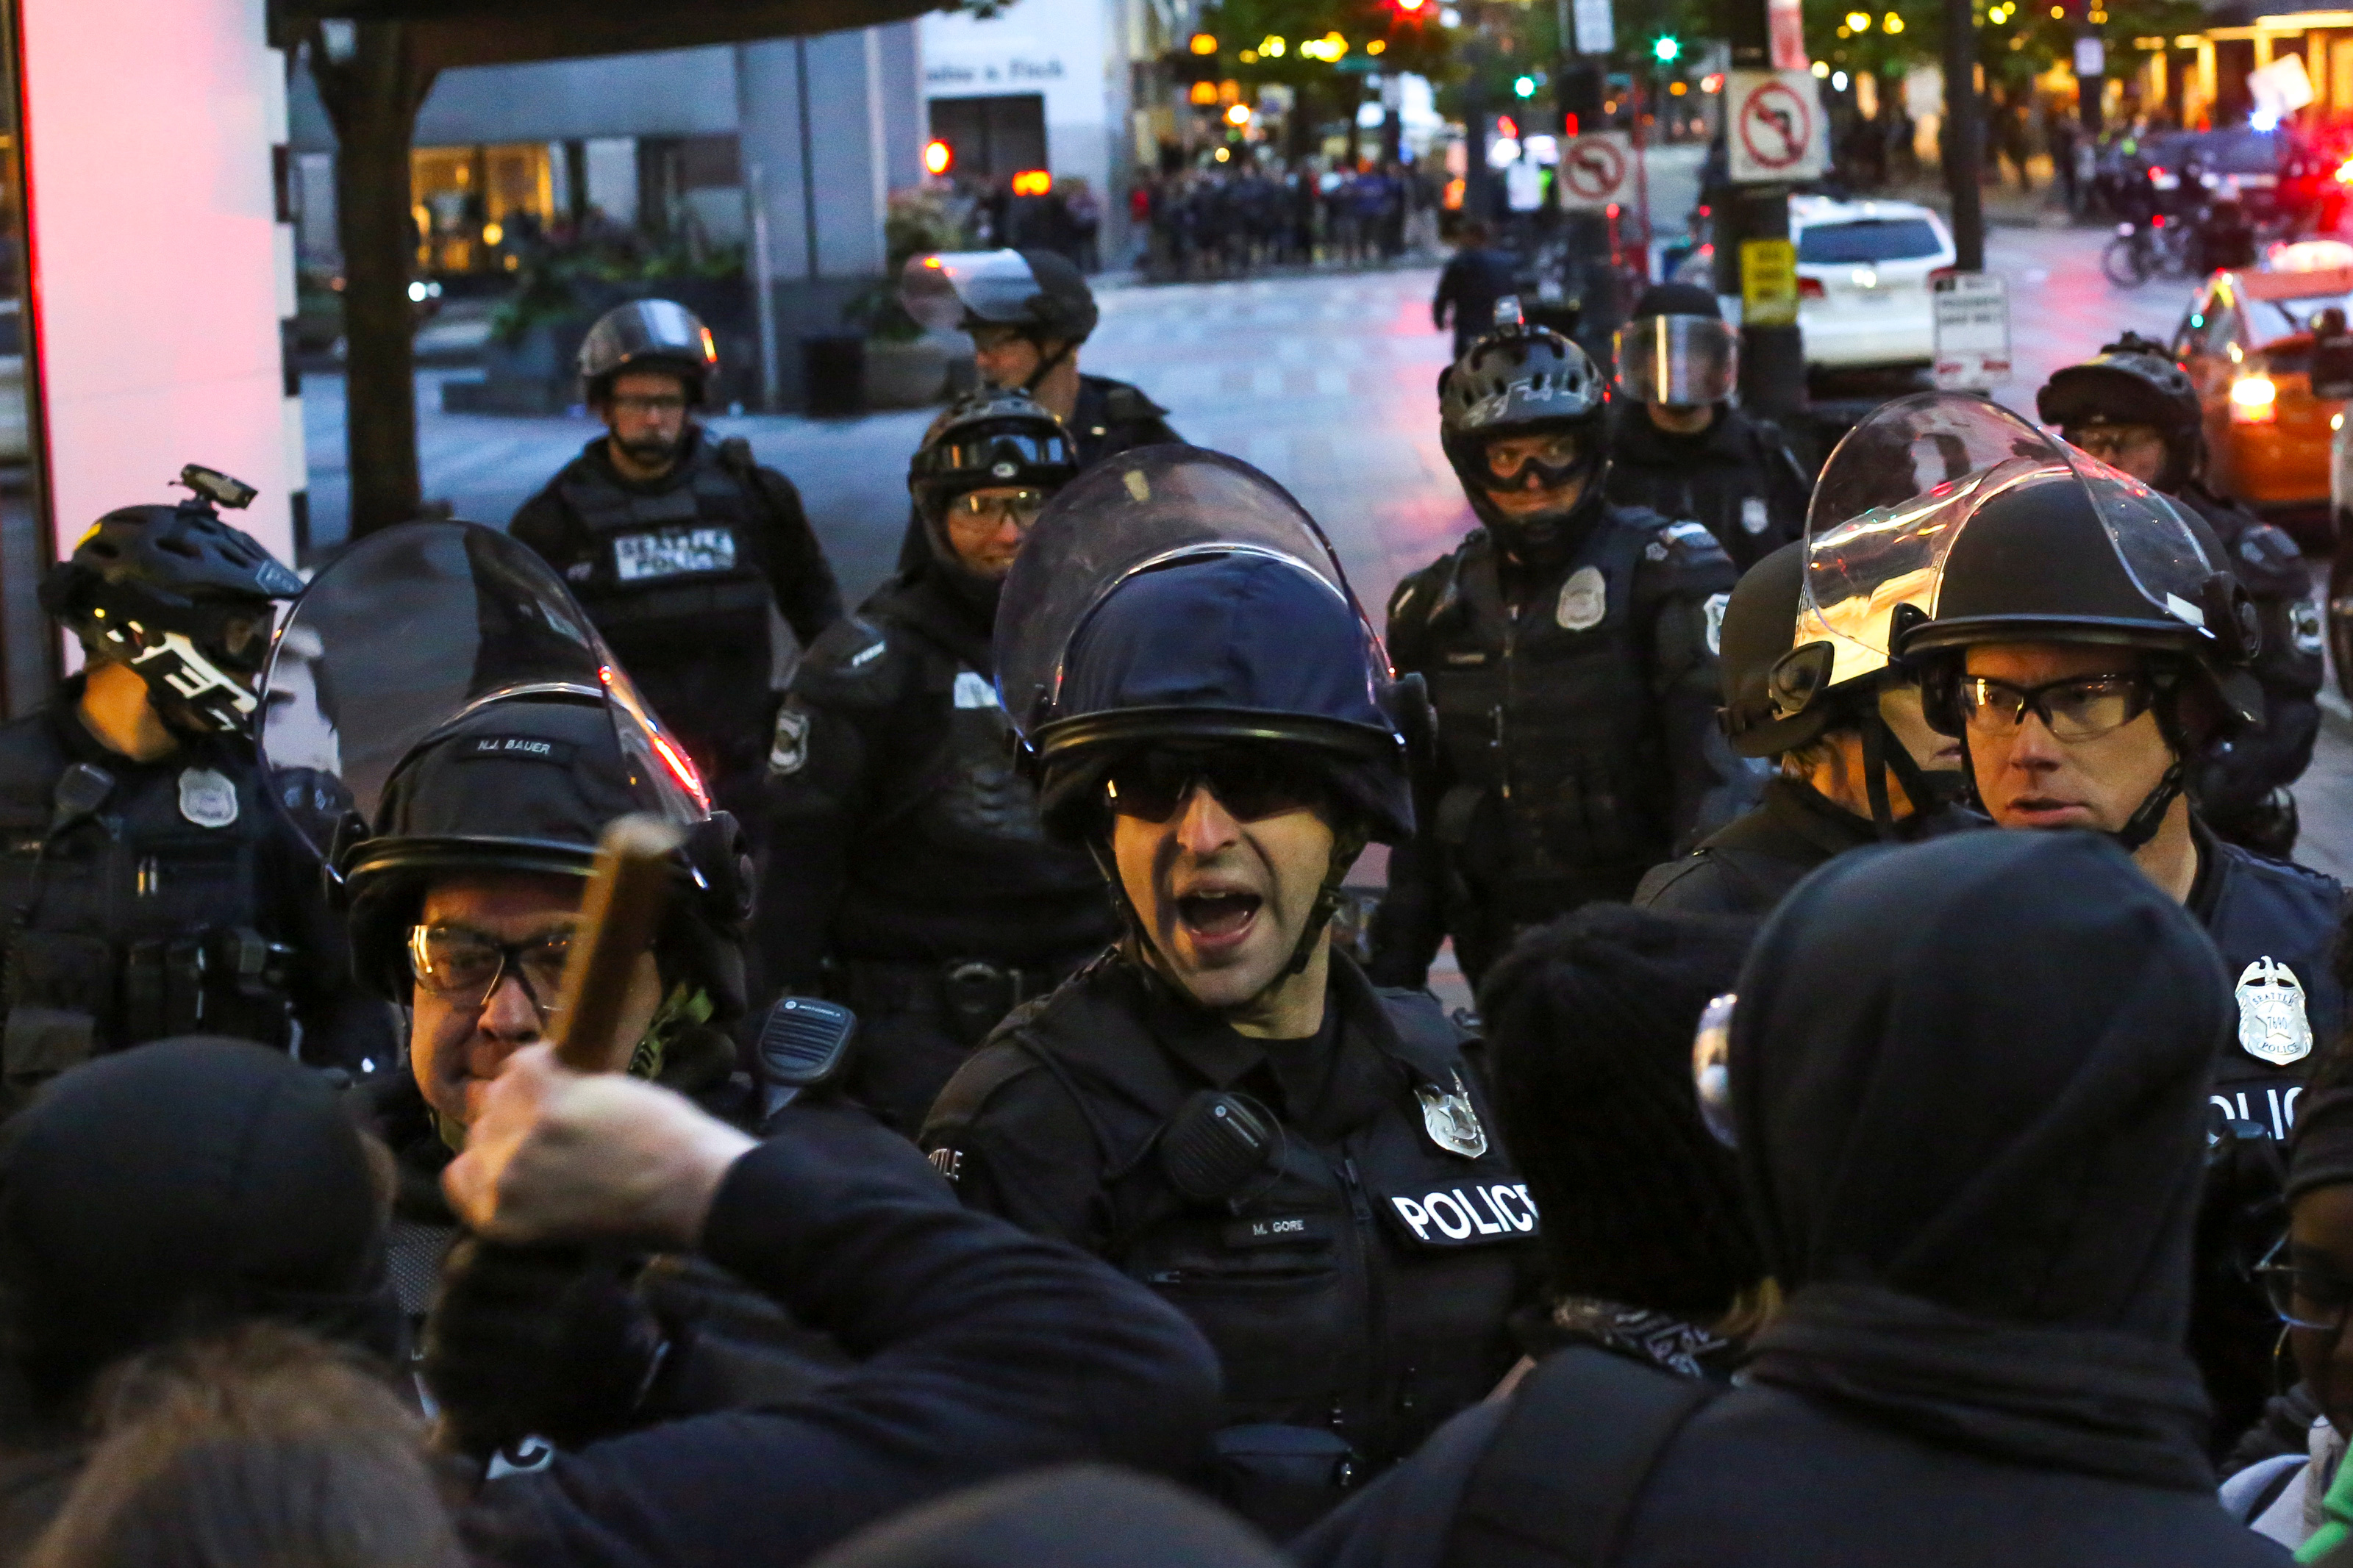 Police officers scuffle with protestors while forcing them to disperse from Westlake Park during May Day protests in Seattle, Washington, U.S. May 1, 2017. REUTERS/David Ryder